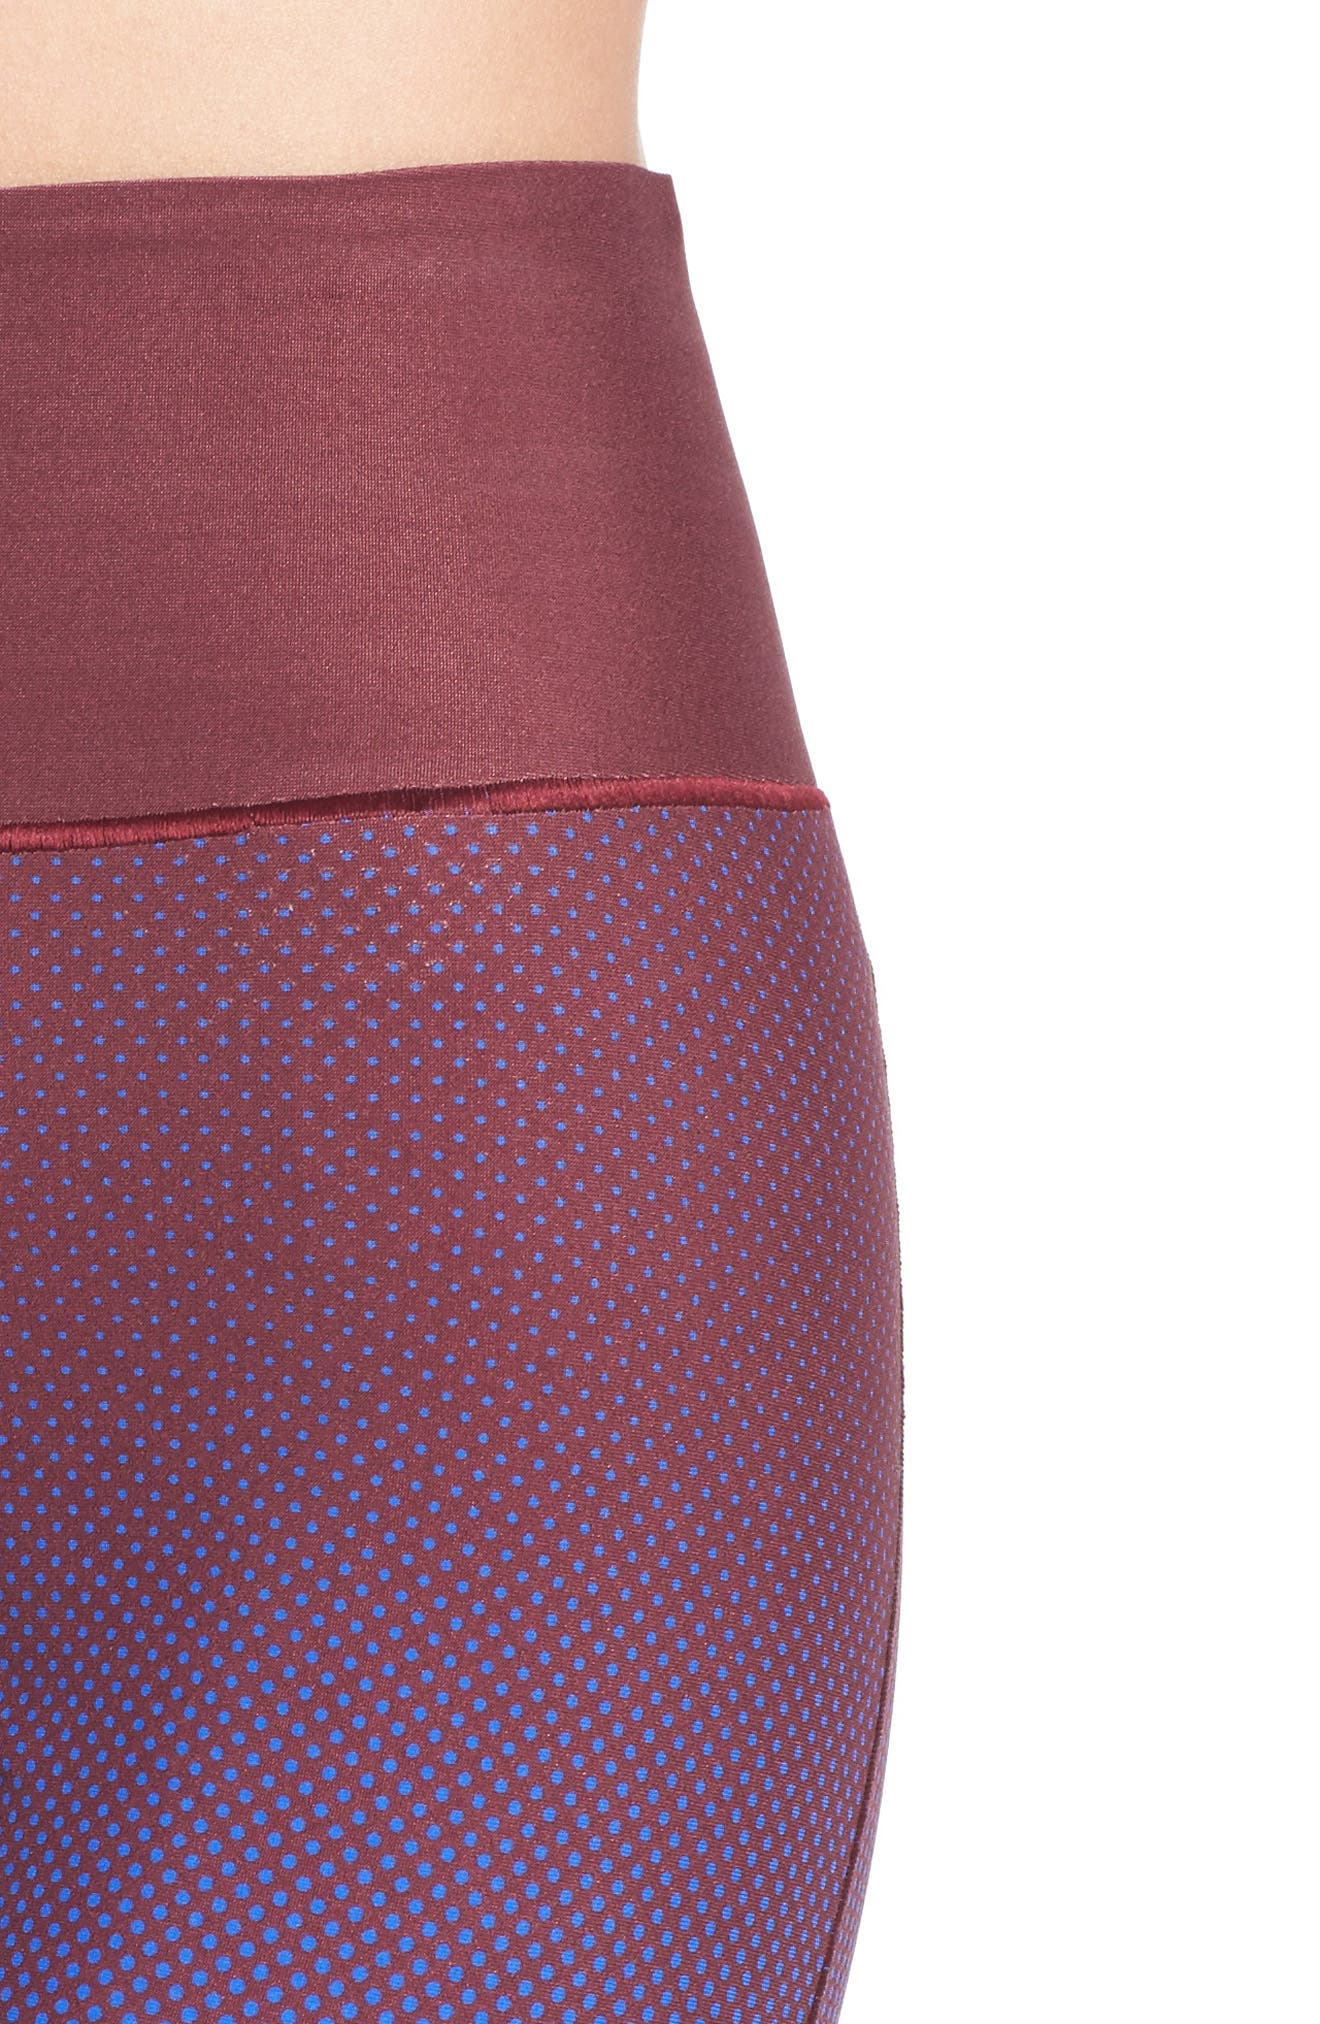 Training Tights,                             Alternate thumbnail 4, color,                             Cherry Wood/ Bold Blue